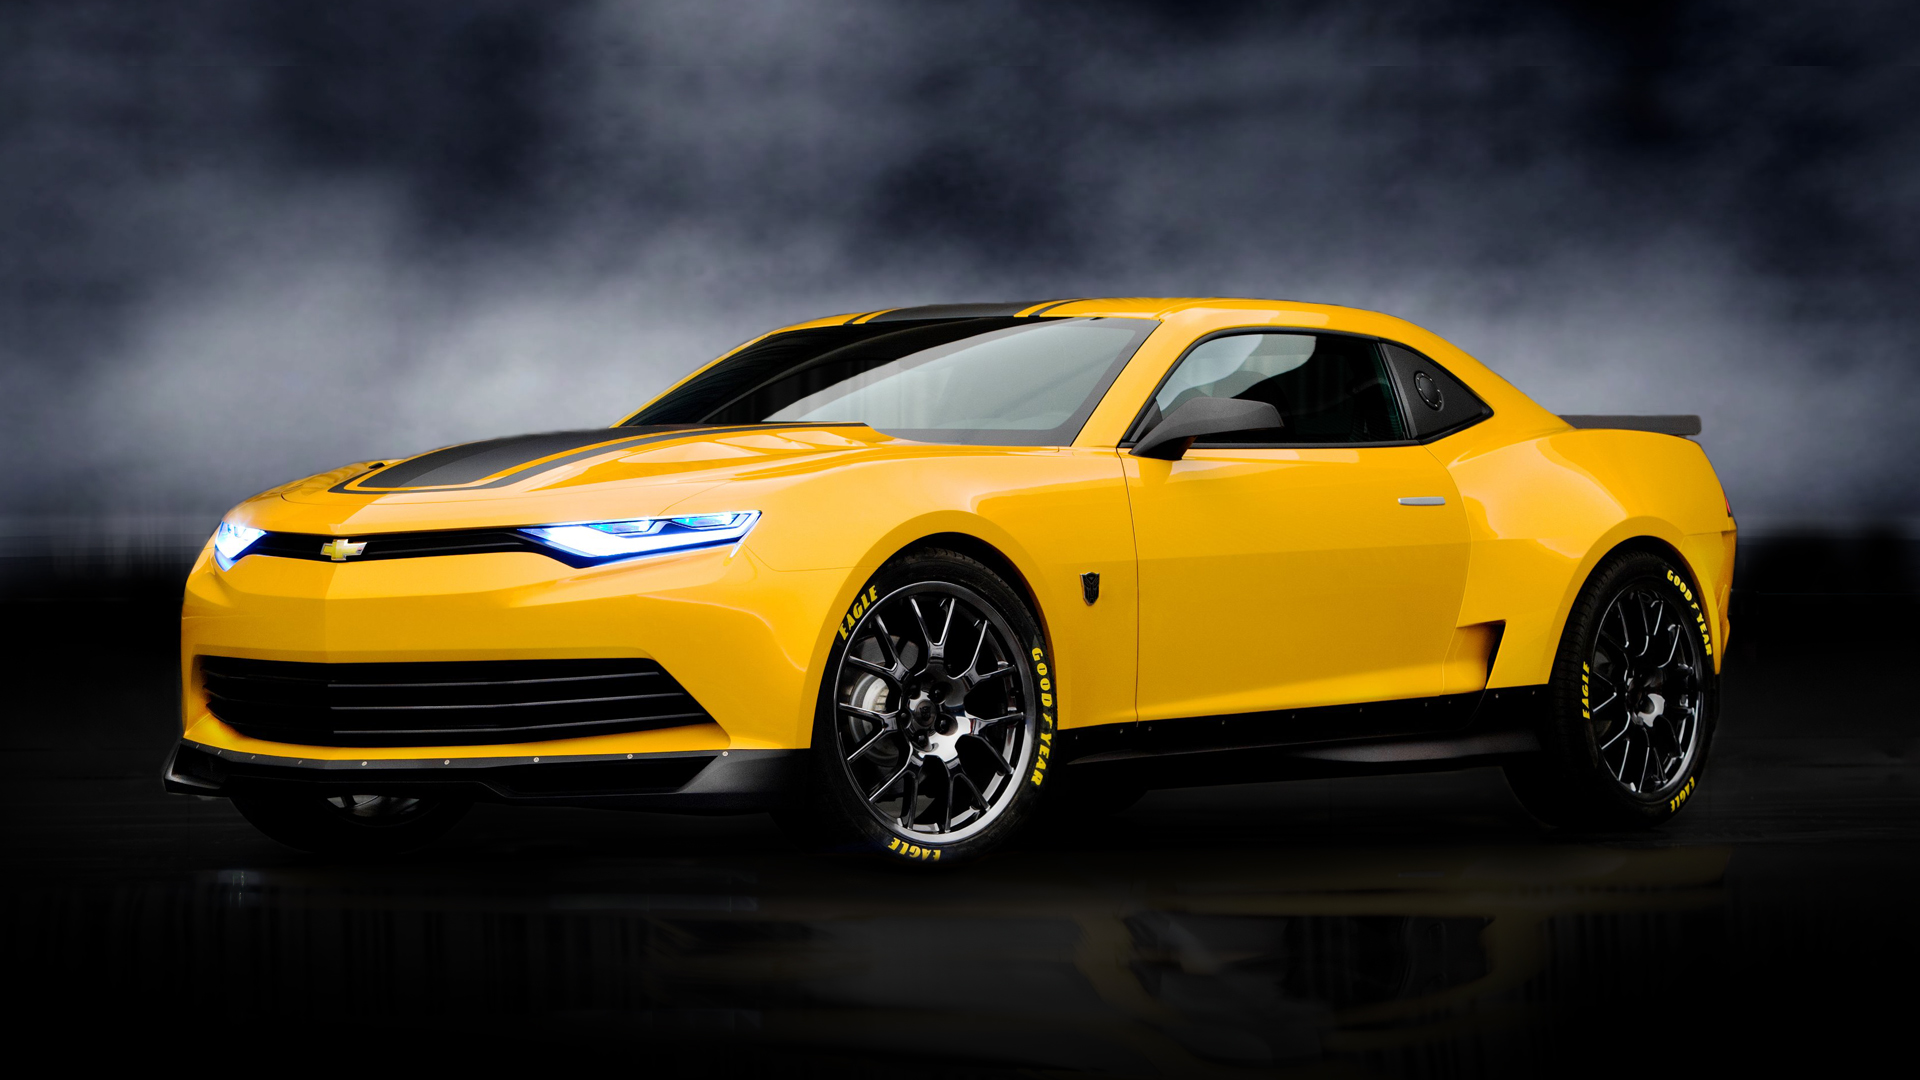 camaro-transformers-4-bumblebee-wallpaper